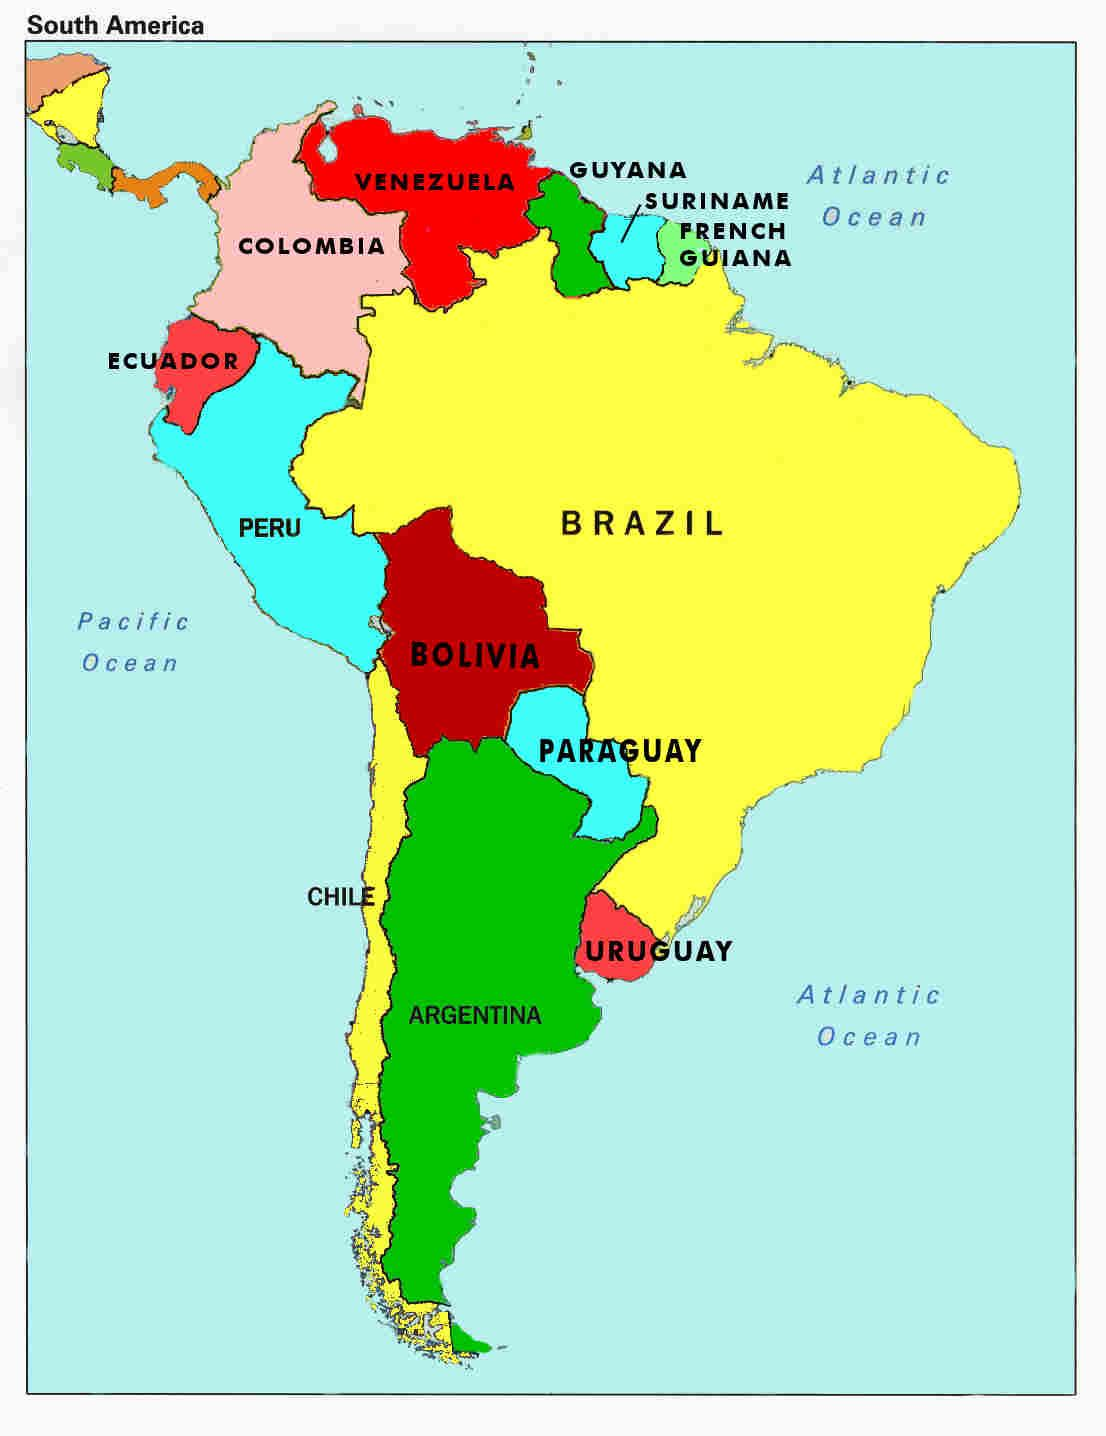 Map of south america countries and capitals map of south america map of south america countries and capitals map of south america gumiabroncs Images